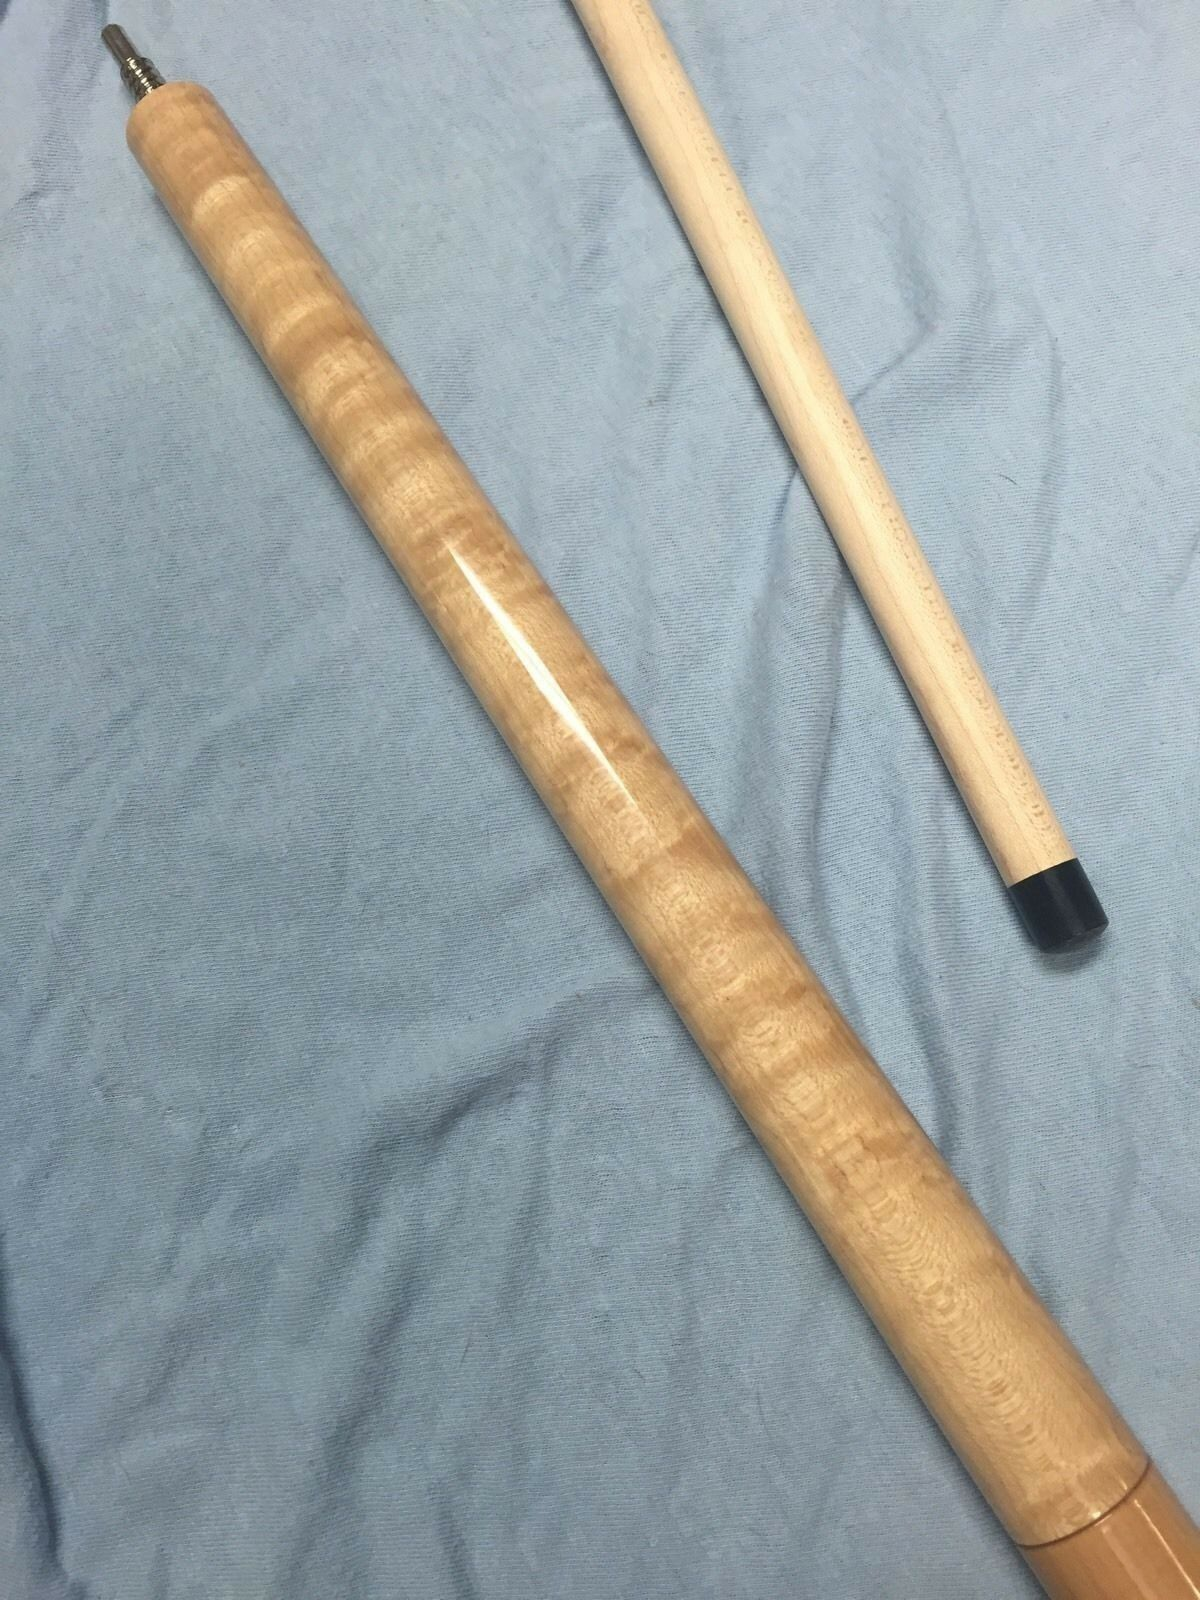 J/&J Natural Maple Jump Break Pool Cue with FREE Shipping